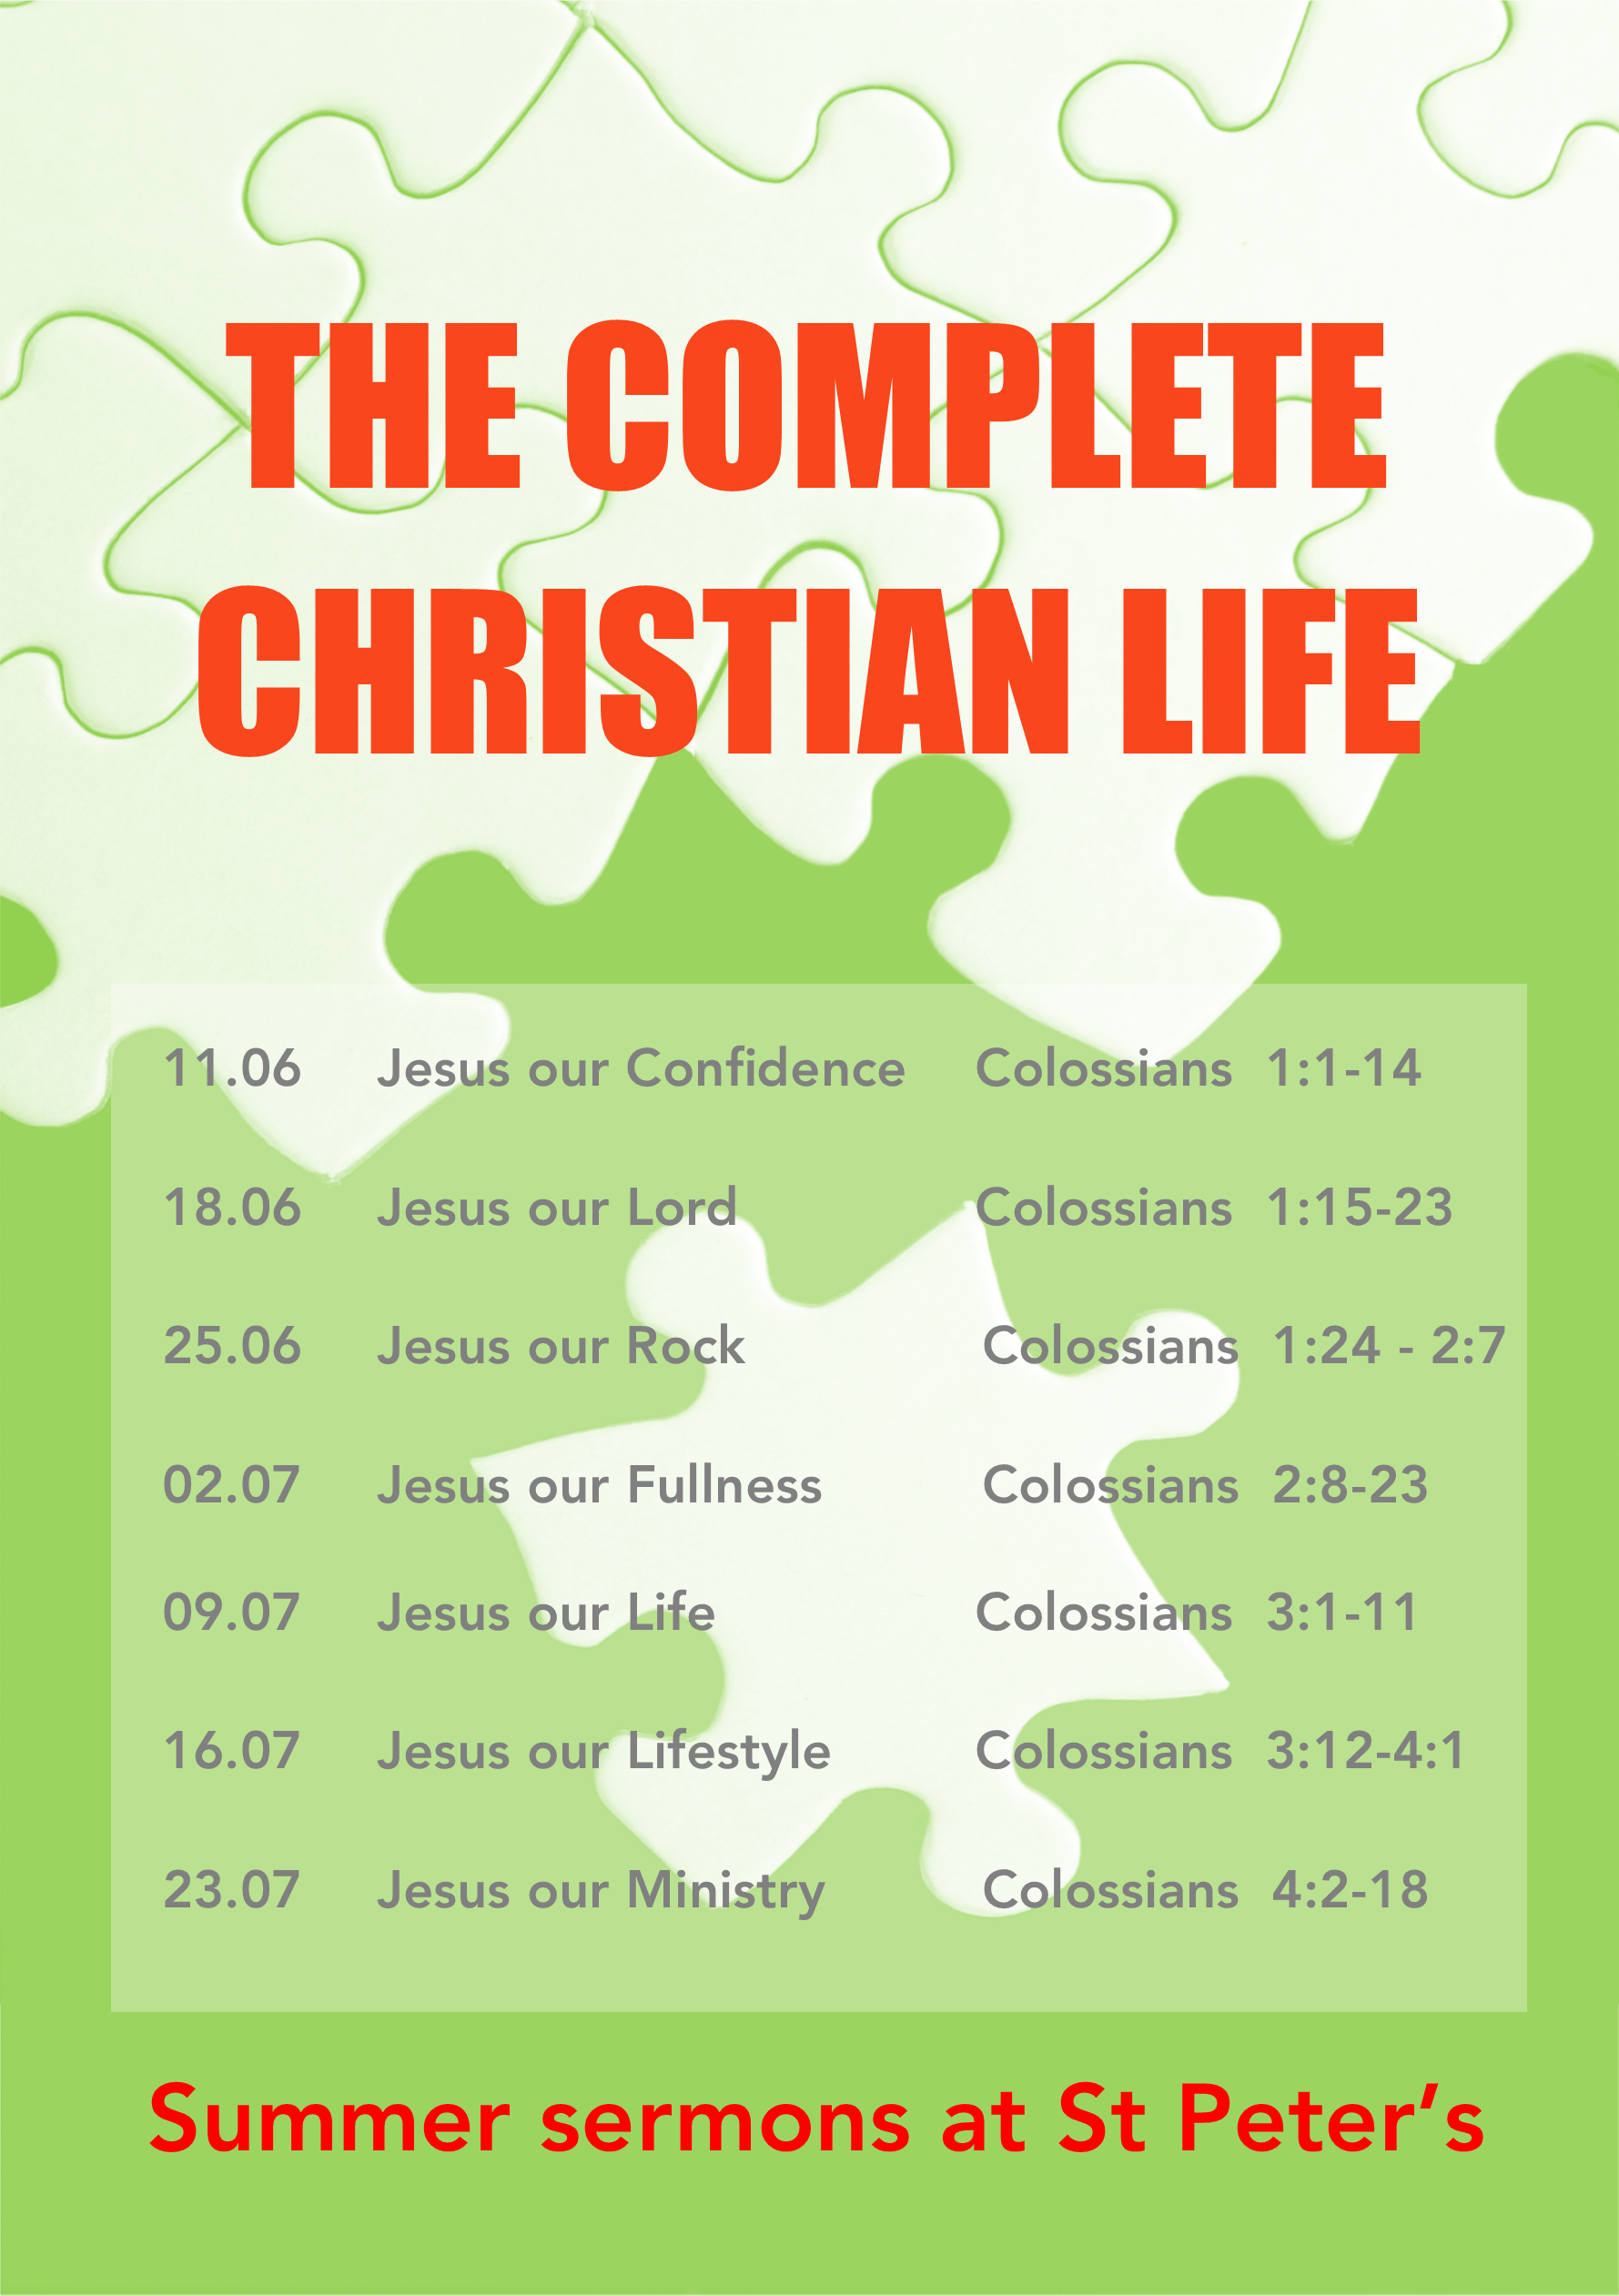 christian single men in saint peters 1230pm @ st peter's followed by bring & share lunch 12 bible fellowship @ st peter's from 7:45 pm to 9:00 pm tea & coffee followed by a look at a bible passage: 13 thursday morning prayers @ st peter's from 9:15 am to 10:00 am prayer & reading from the bible drop in @ st peter's from 10:00 am to 12:00 pm drop in for a cup of tea or coffee and a chat.